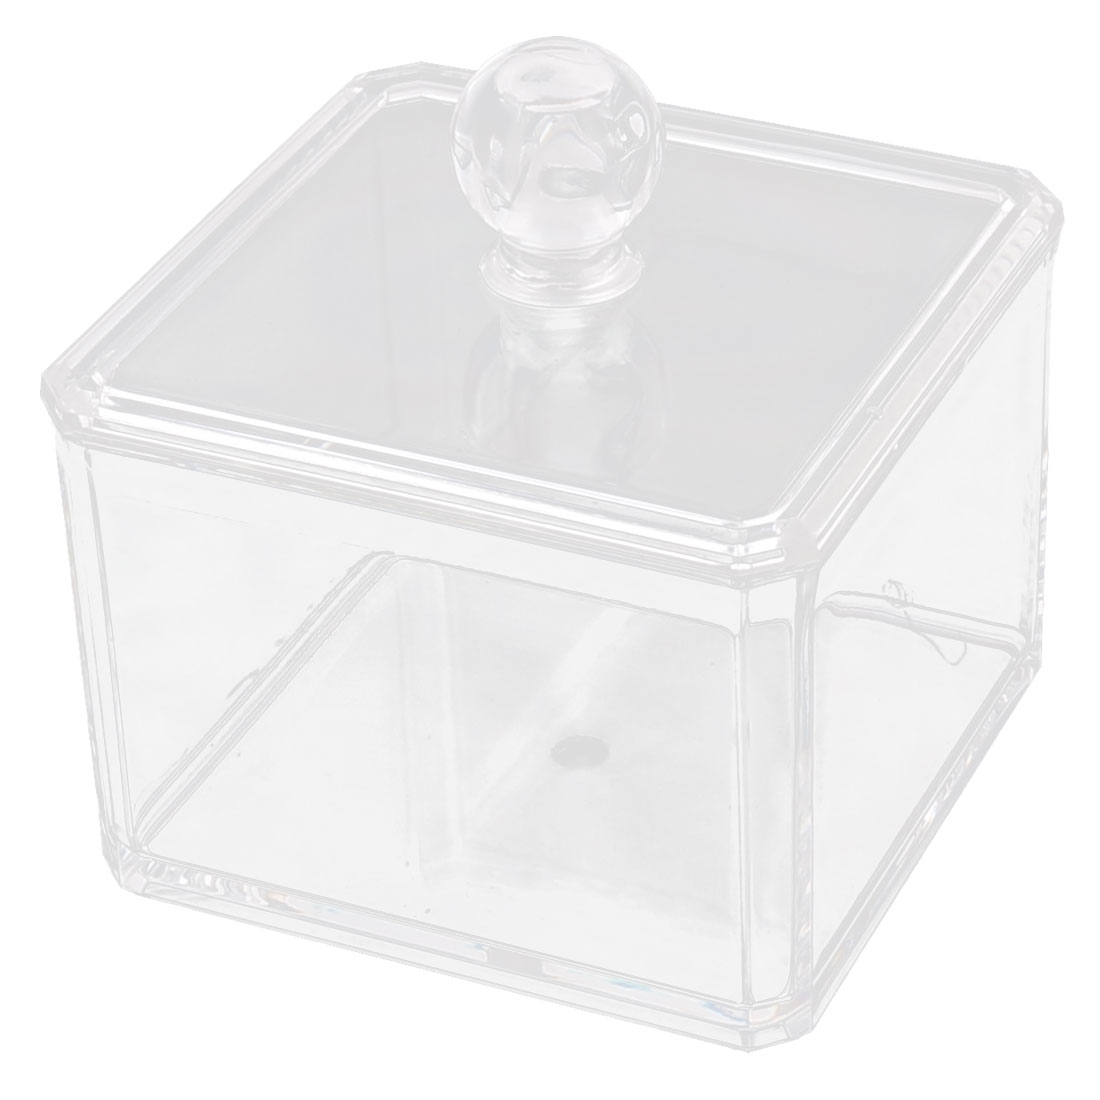 Acrylic Cotton Pads Lipstick Cosmetic Storage Holder Jewelry Box Organizer Clear